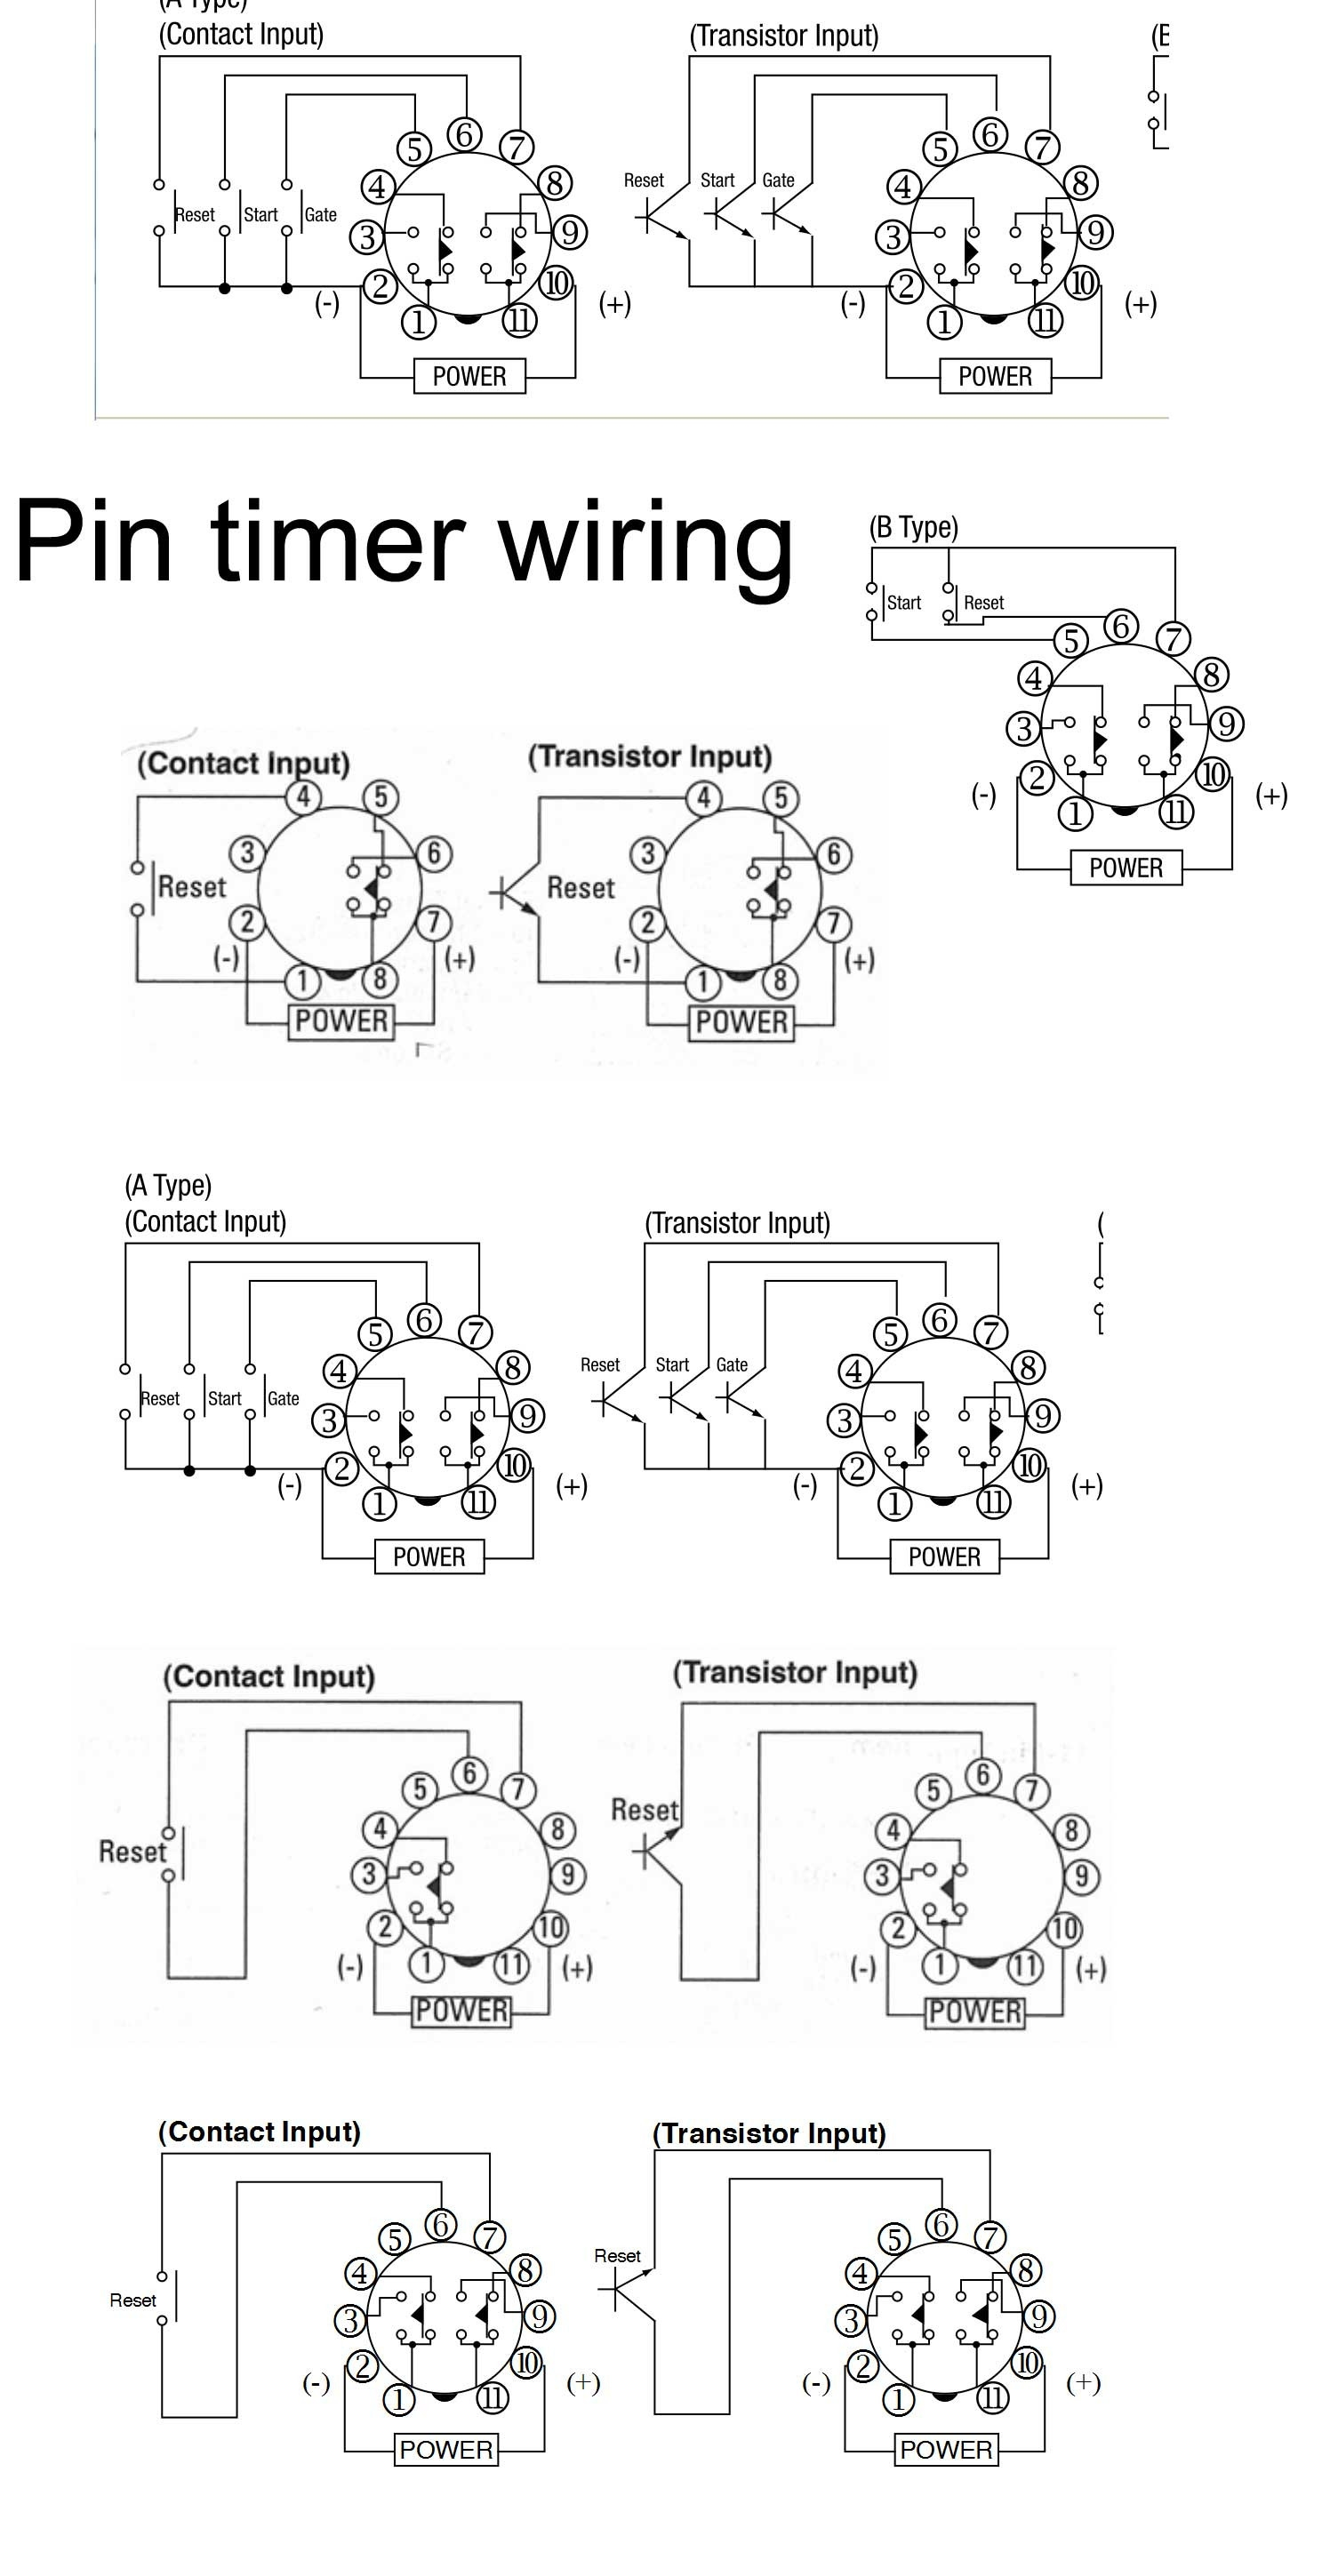 solid state timer wiring diagram Download-Wiring Diagram solid State Relay Fresh Omron H3ca A Wiring Diagram Awesome Omron H3ca A solid 19-i